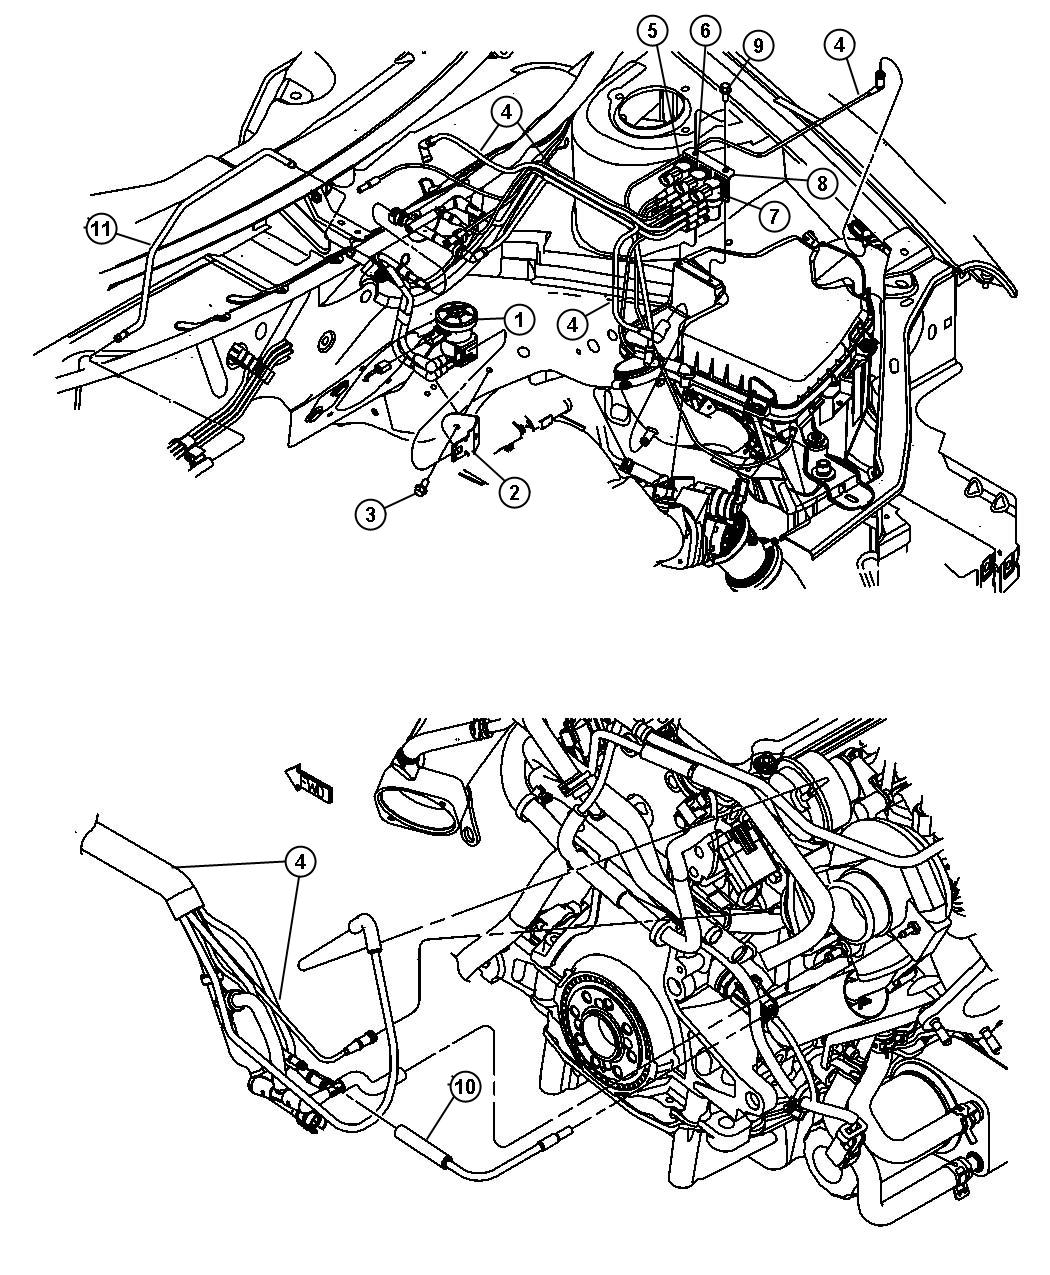 Vr6 Engine Diagram - Wiring Schema Collection